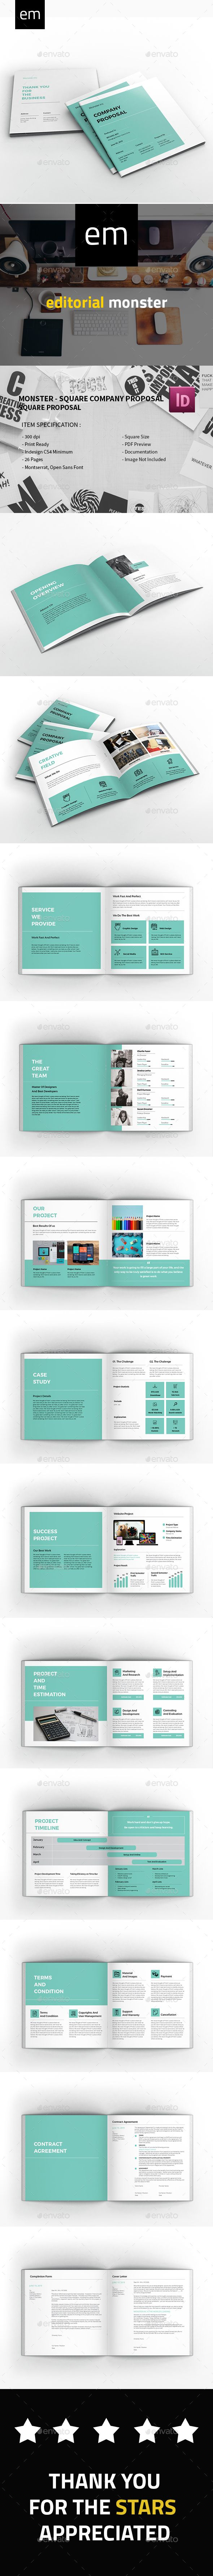 Monster - Square #Company #Proposal - Corporate #Brochures Download here: https://graphicriver.net/item/monster-square-company-proposal/20370713?ref=alena994